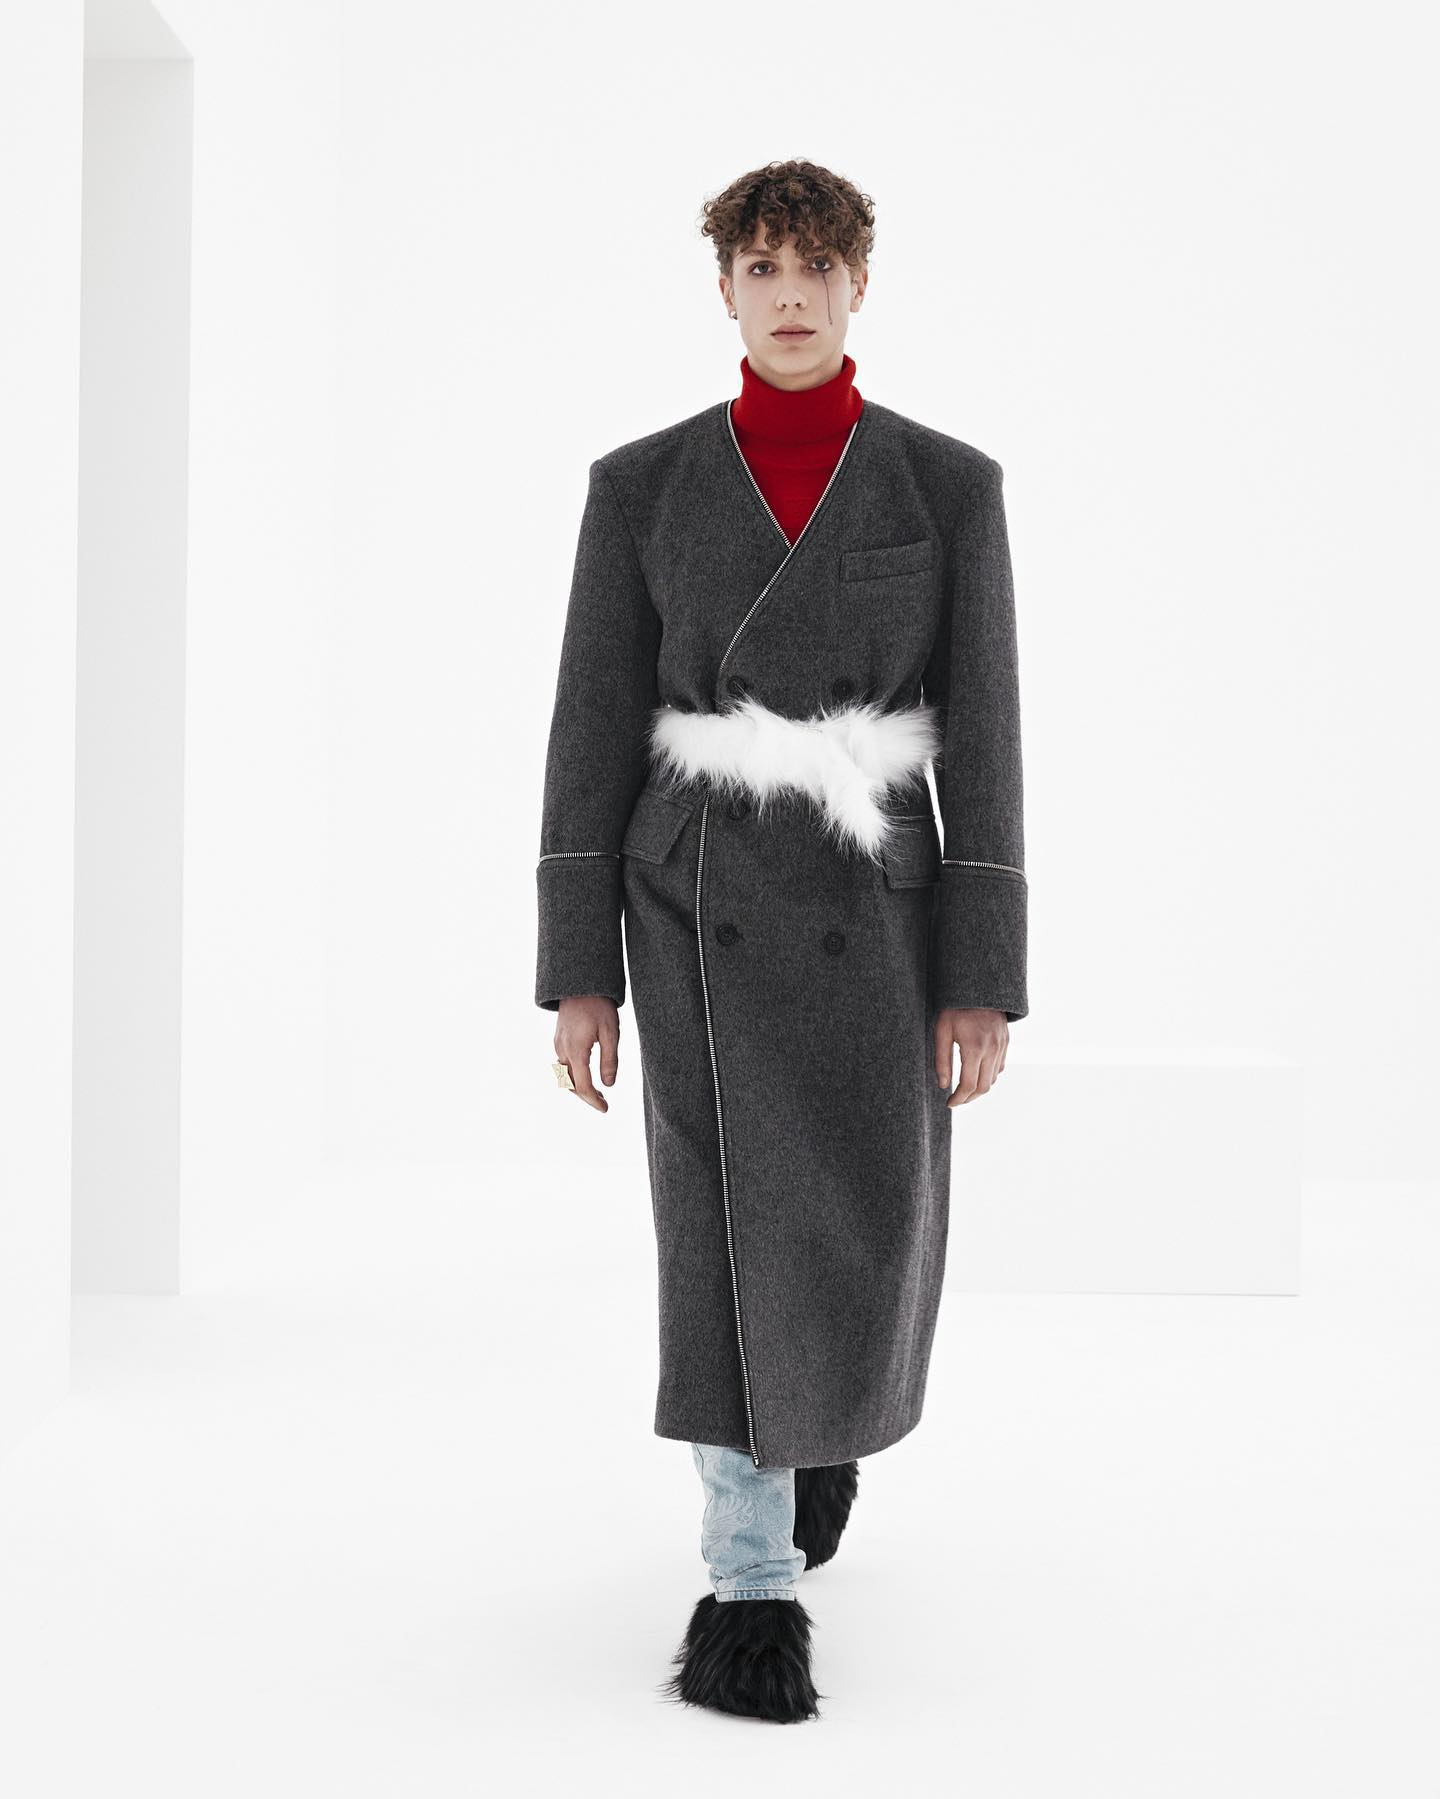 Finn (debut) for WE11DONE FW21. Photography and direction by Willy Vanderperre,  styling by Olivier Rizzo, hair by Anthony Turner,  makeup by Karin Westerlundd,  manicure by Anatole Rainey, casting by Ashley Brokaw.